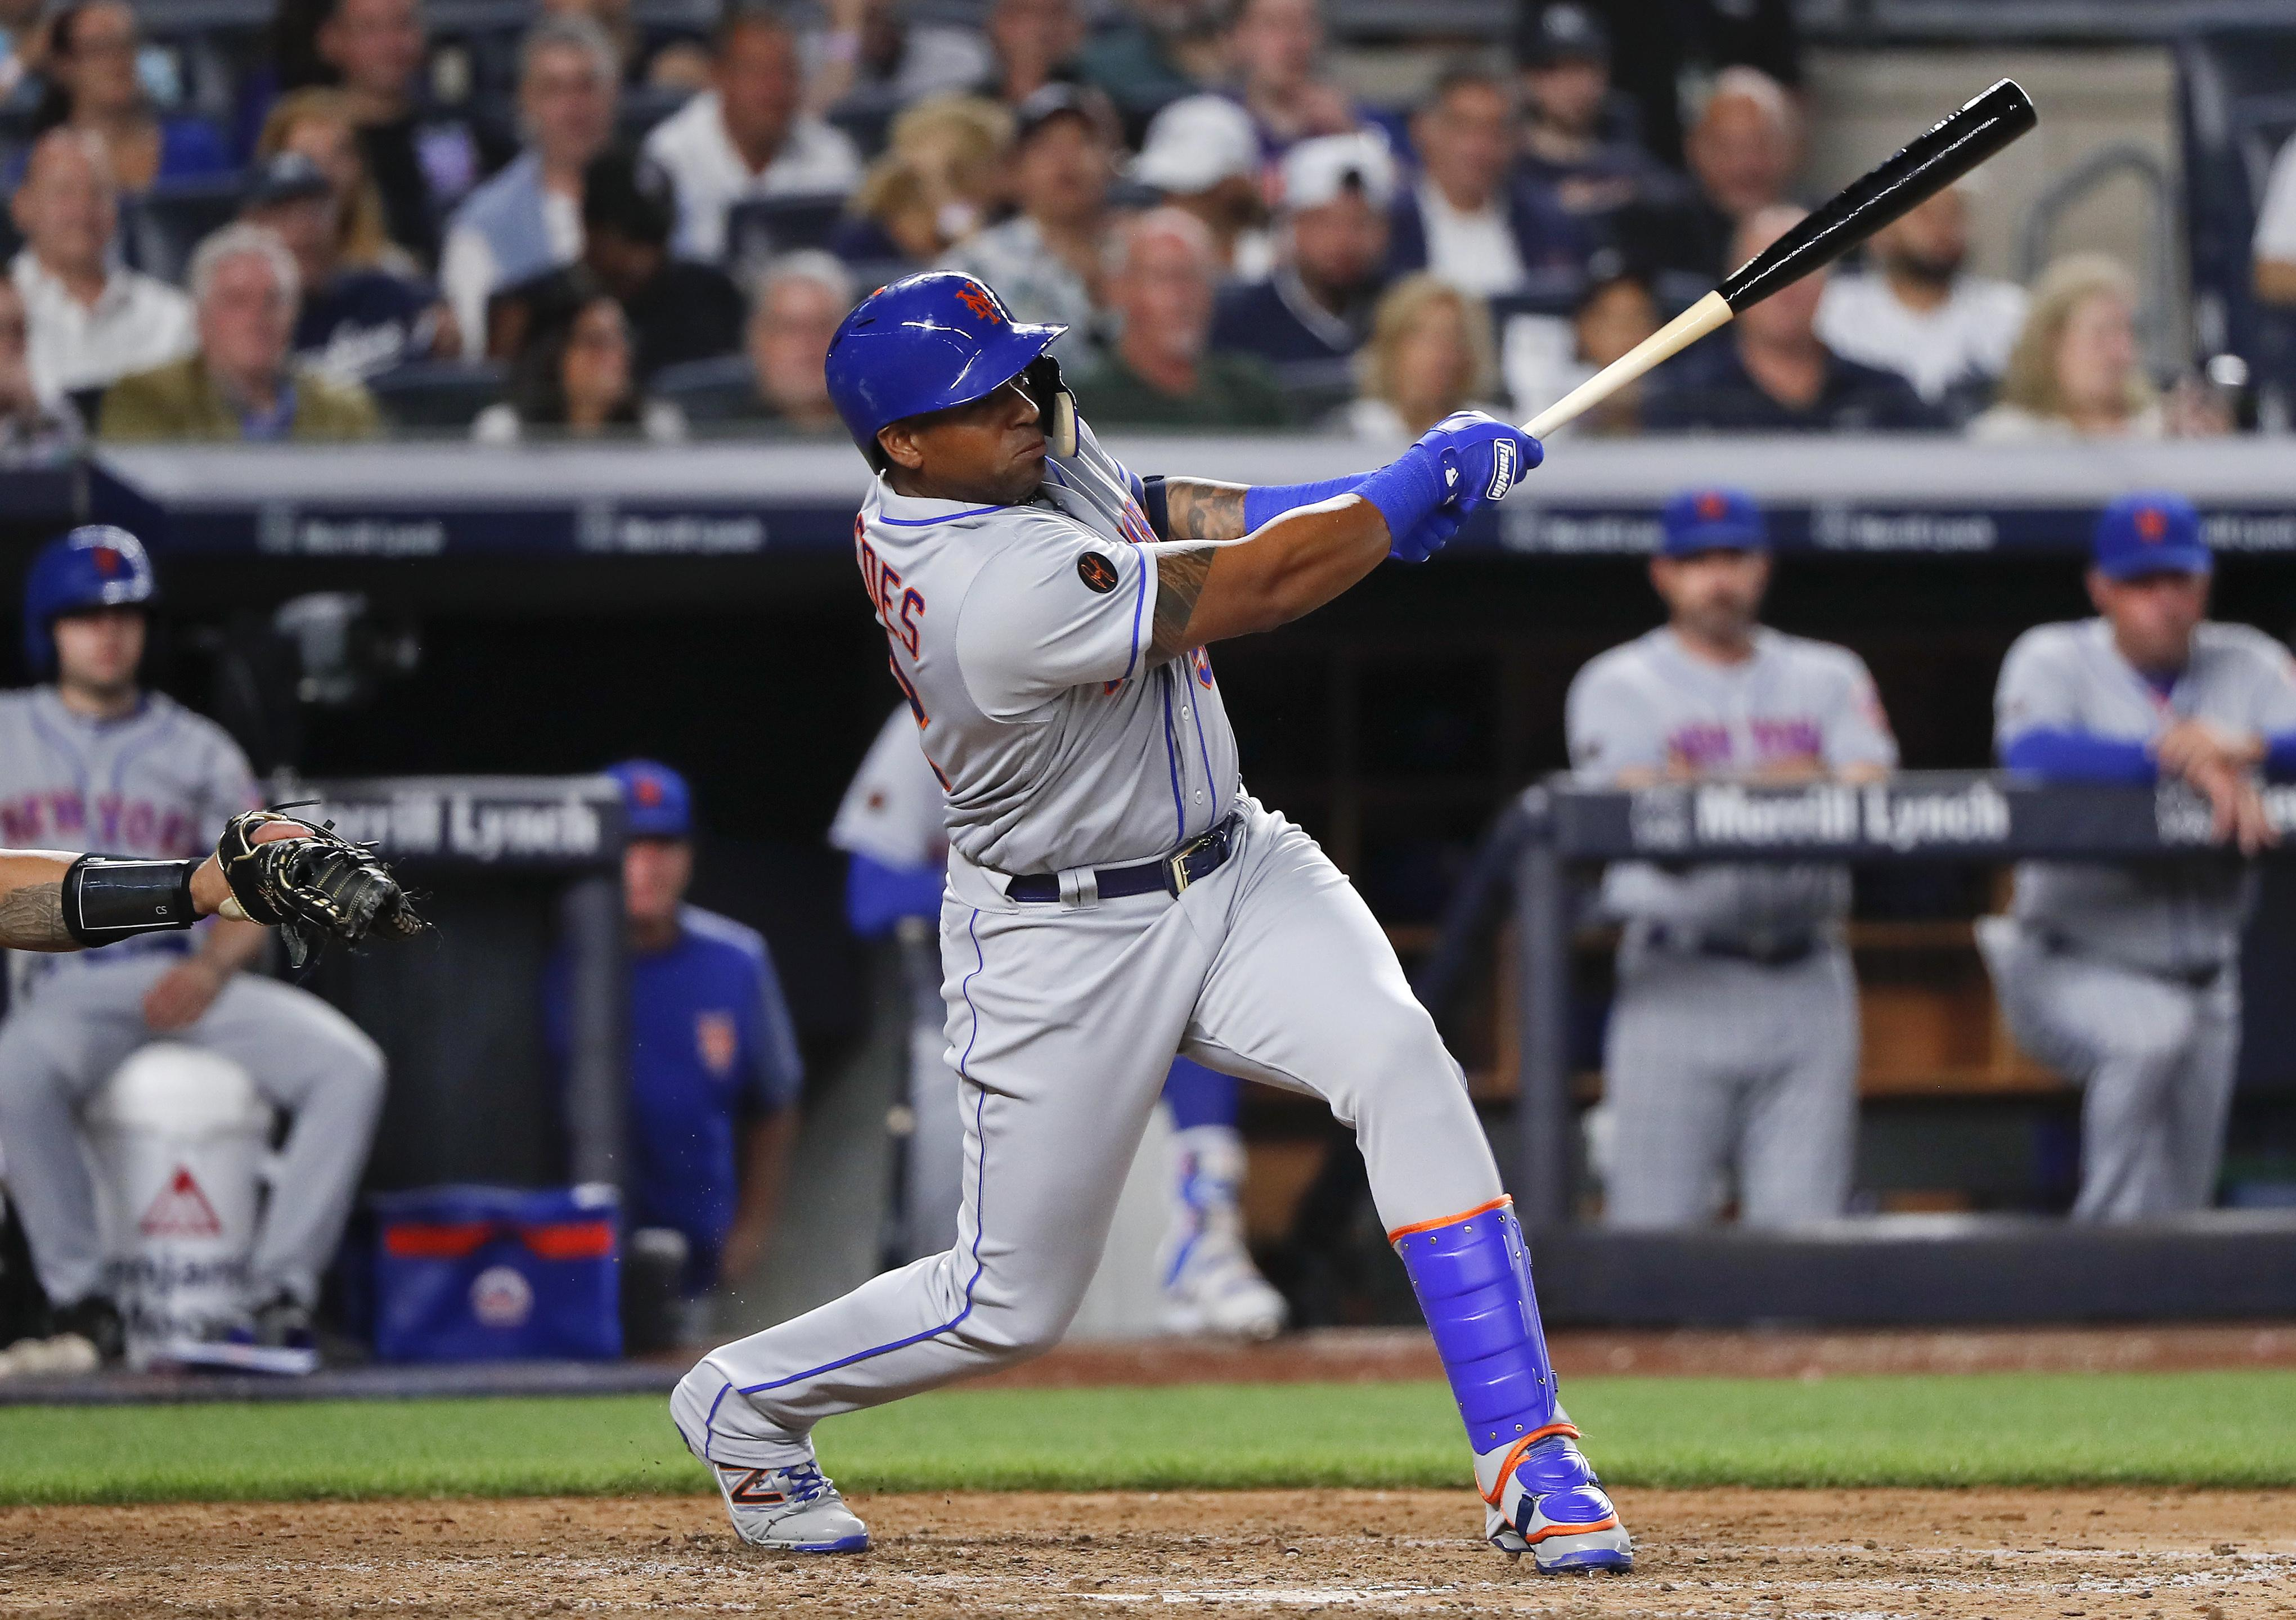 100% authentic e63d5 df07a Mets' Yoenis Cespedes may need surgery on both feet | The ...